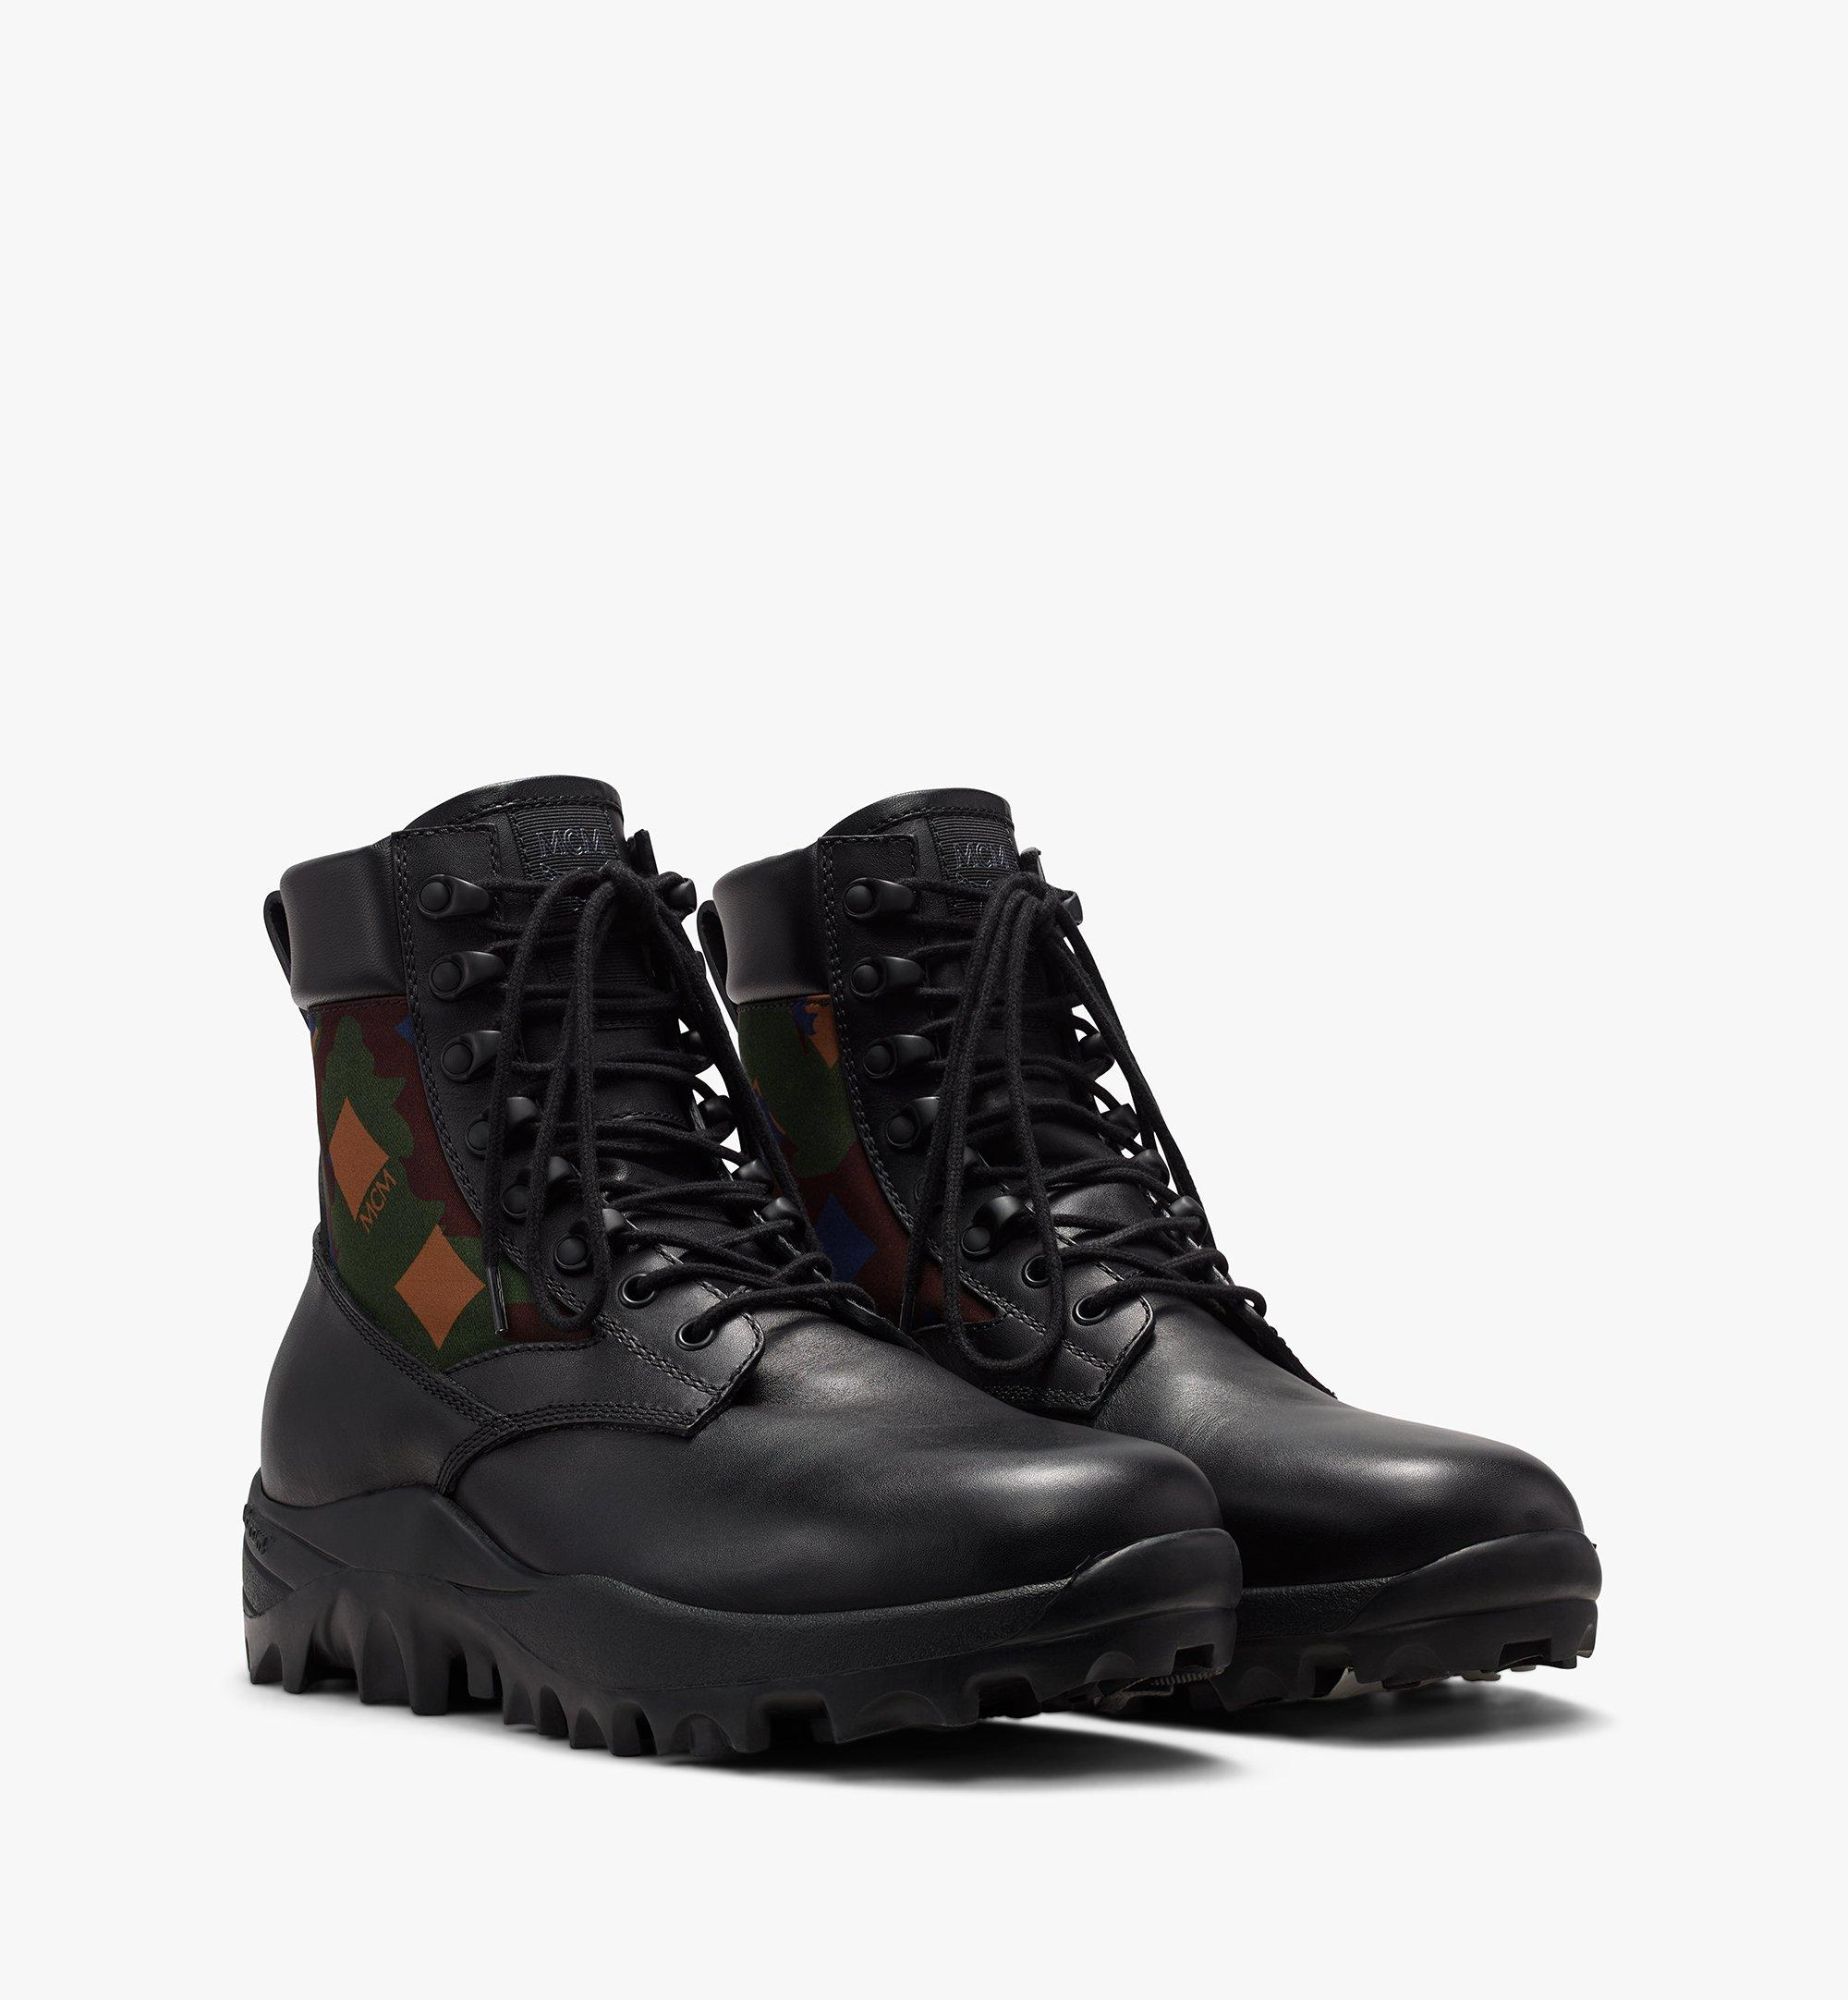 Mcm Boots MEN'S RESNICK COMBAT BOOT IN NYLON CAMO